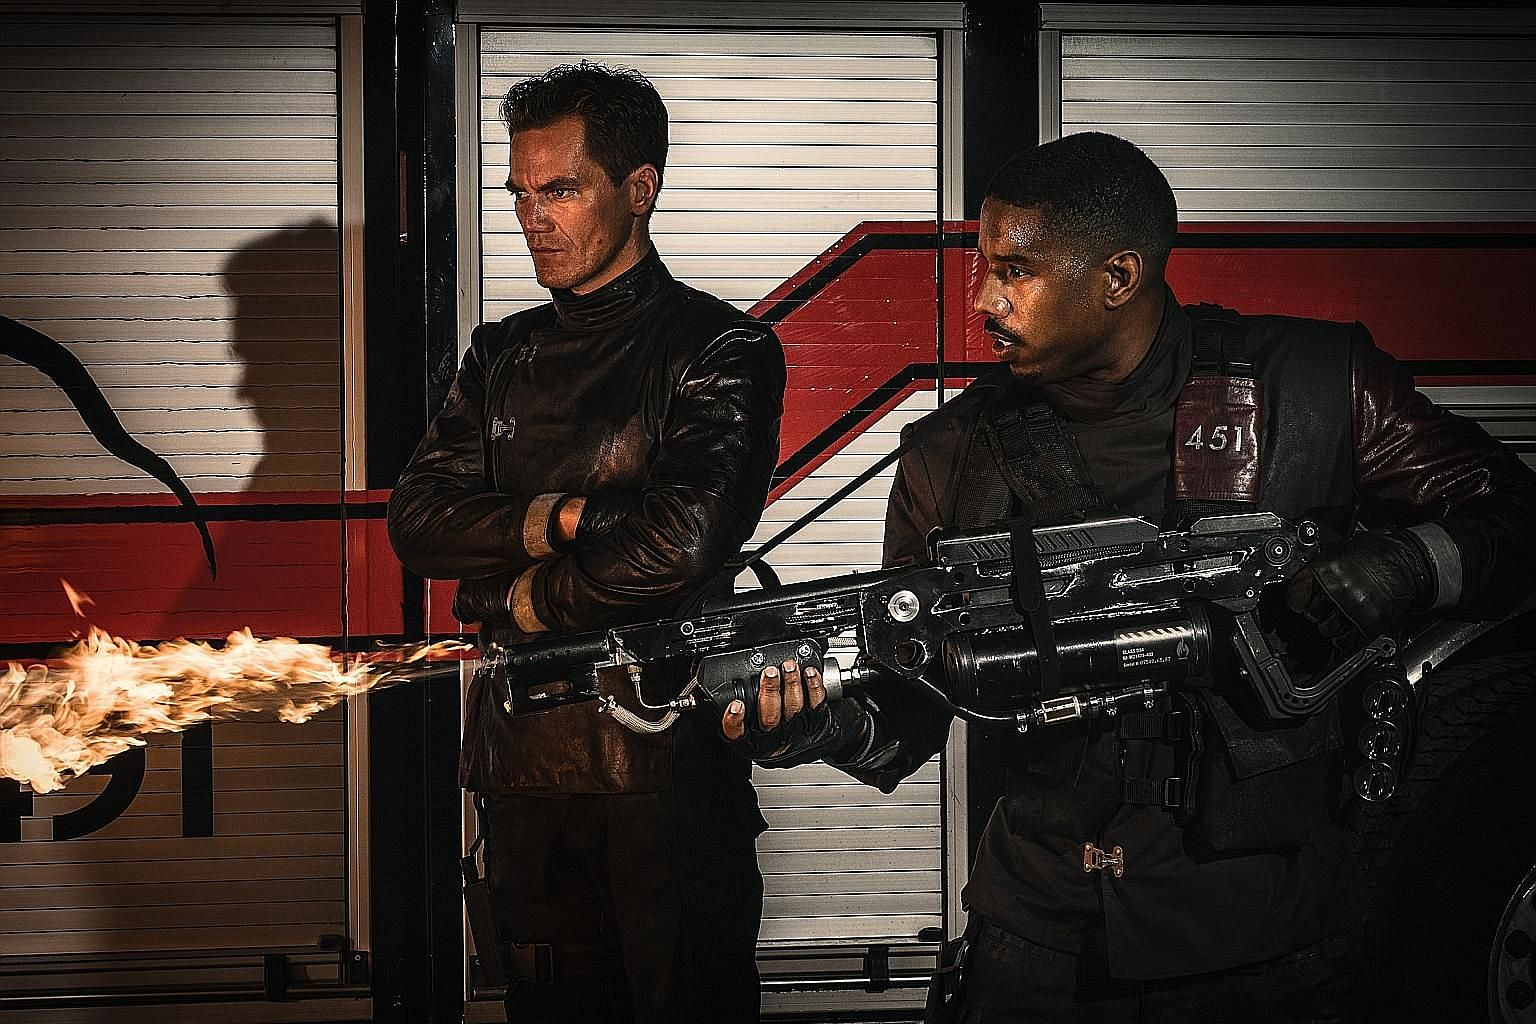 Fahrenheit 451's Michael Shannon (left) and Michael B. Jordan are tasked by the government to destroy outlawed written material and alter facts.